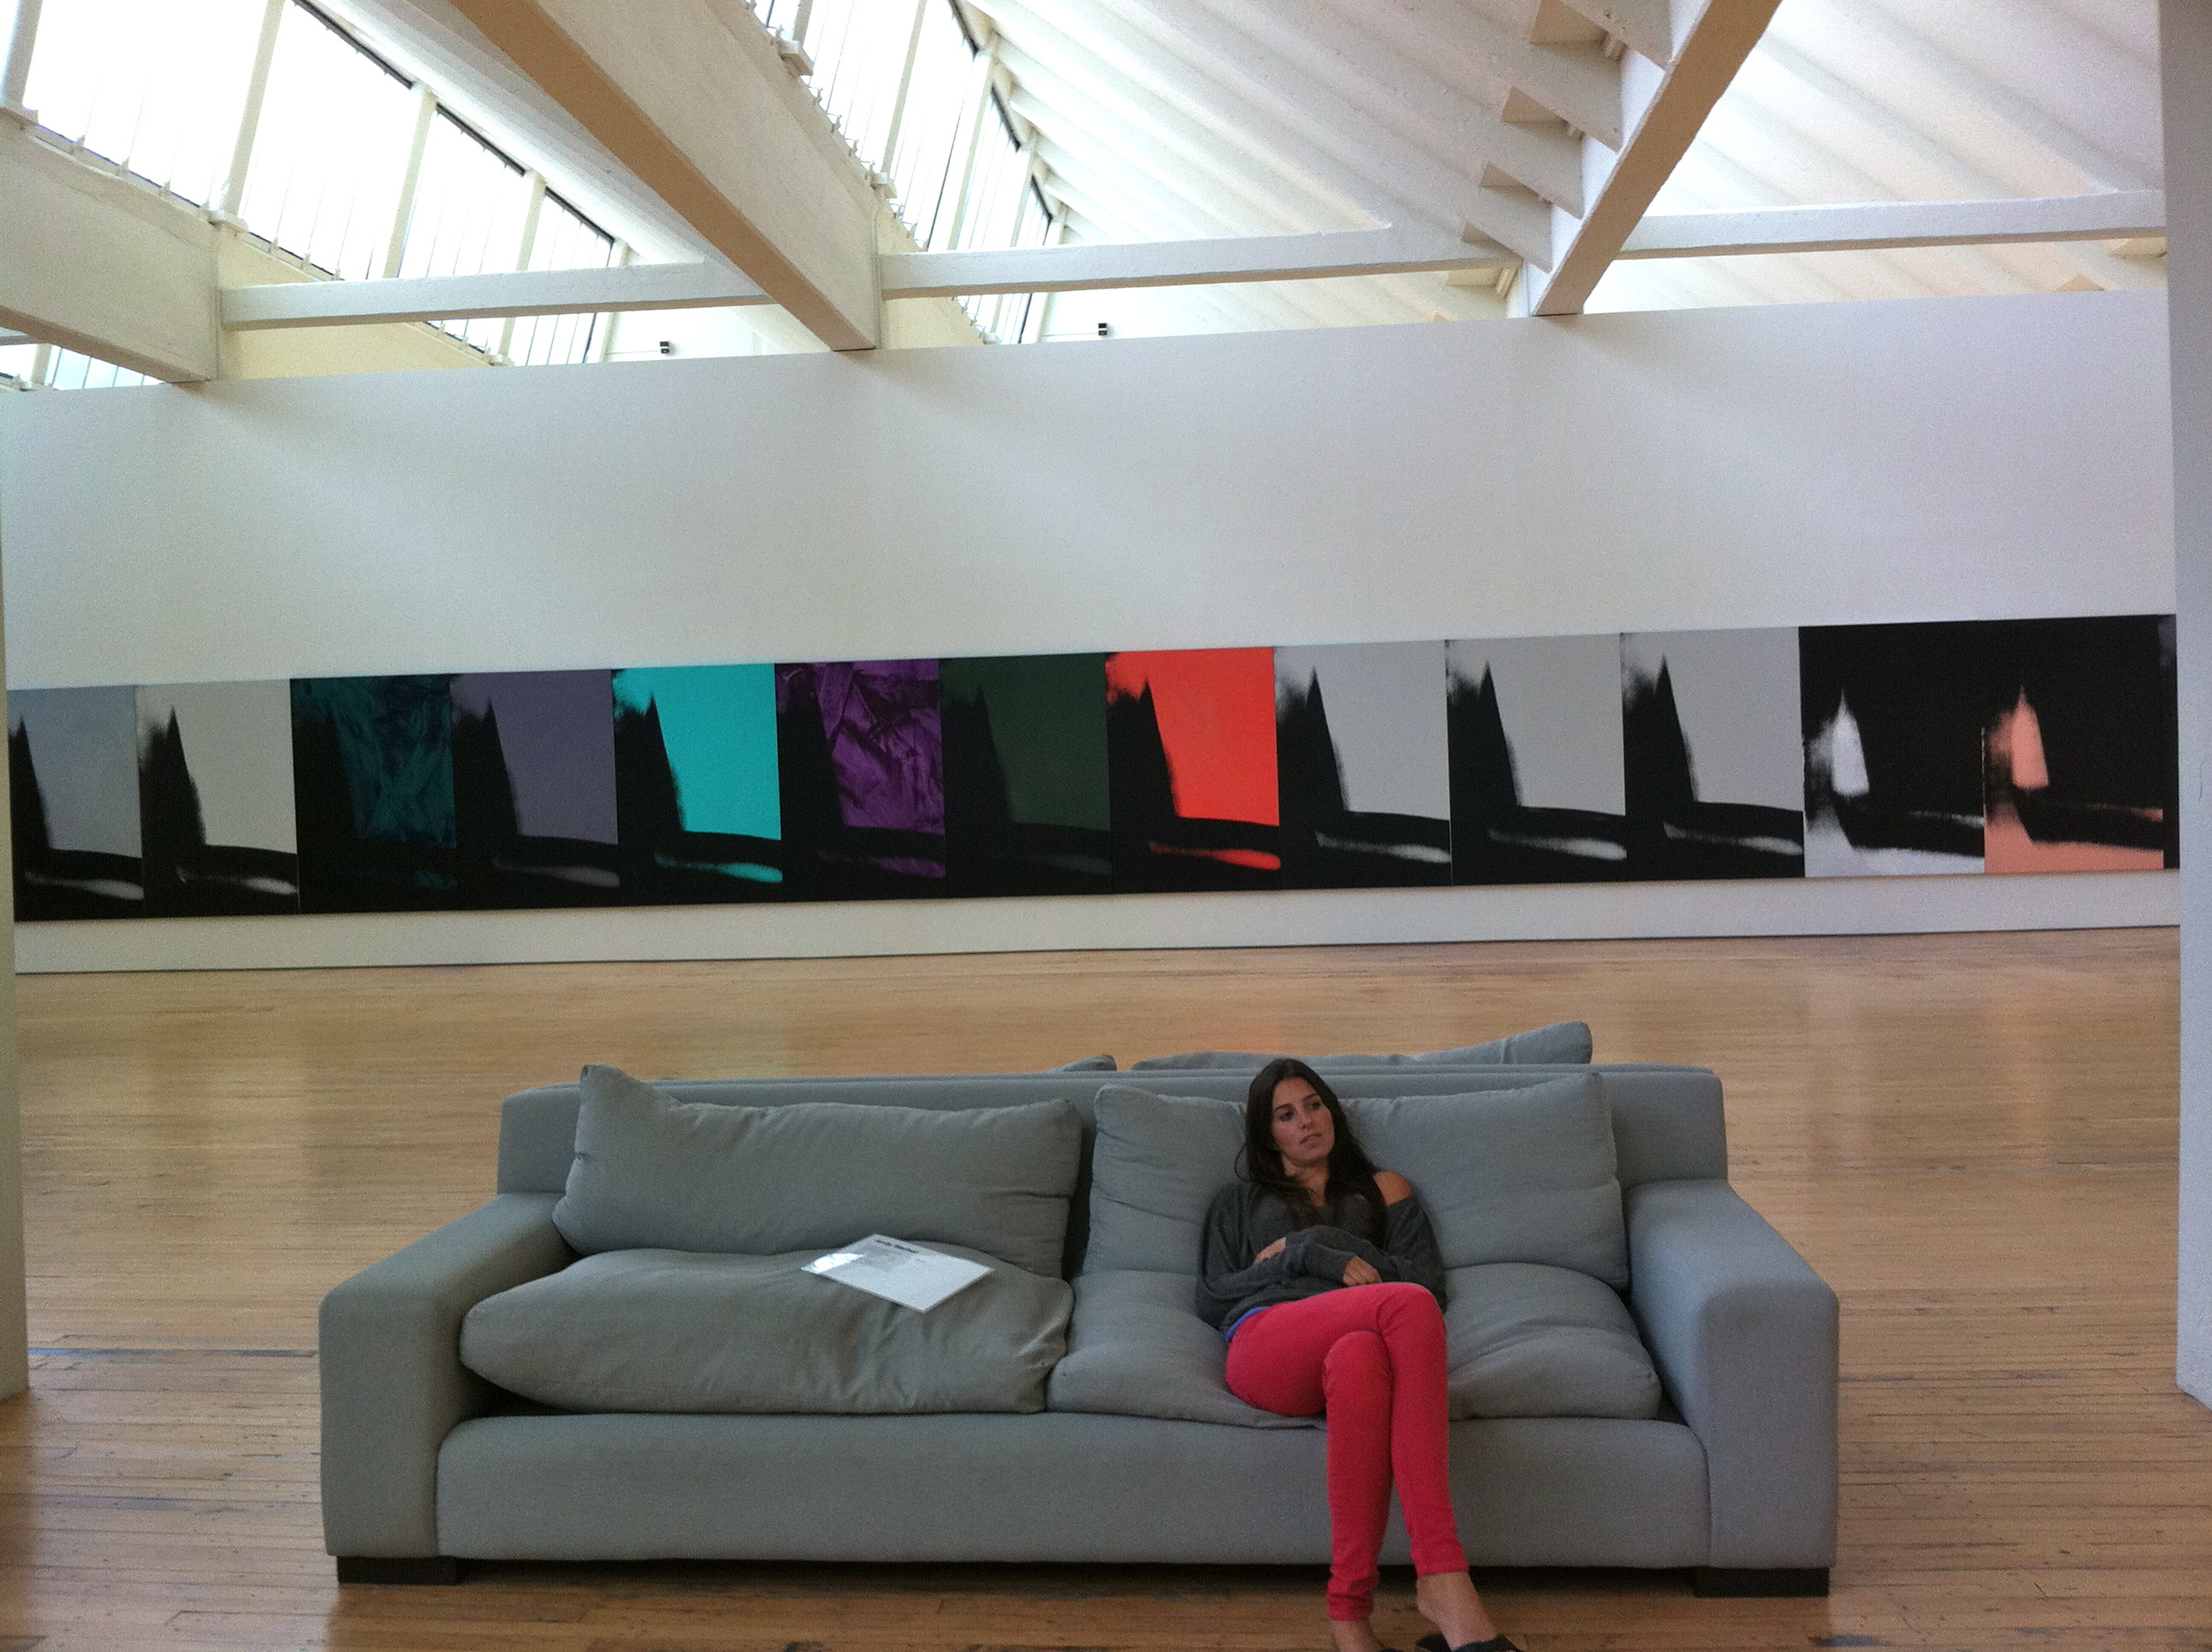 It was pretty fantastic being able to just lounge and look at all the beautiful Warhols at DIA Beacon.